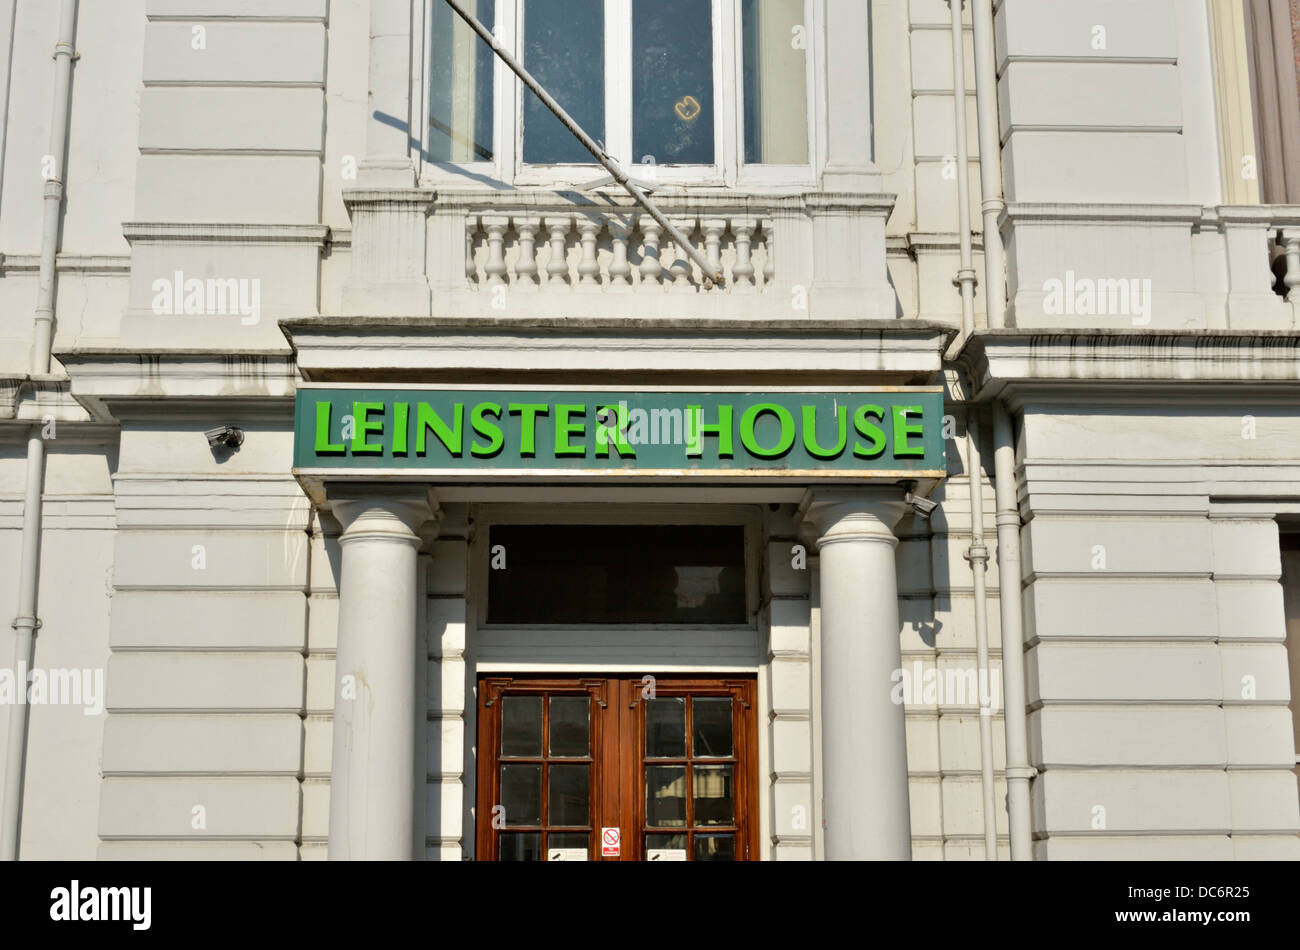 Leinster House in Bayswater, London, UK. - Stock Image